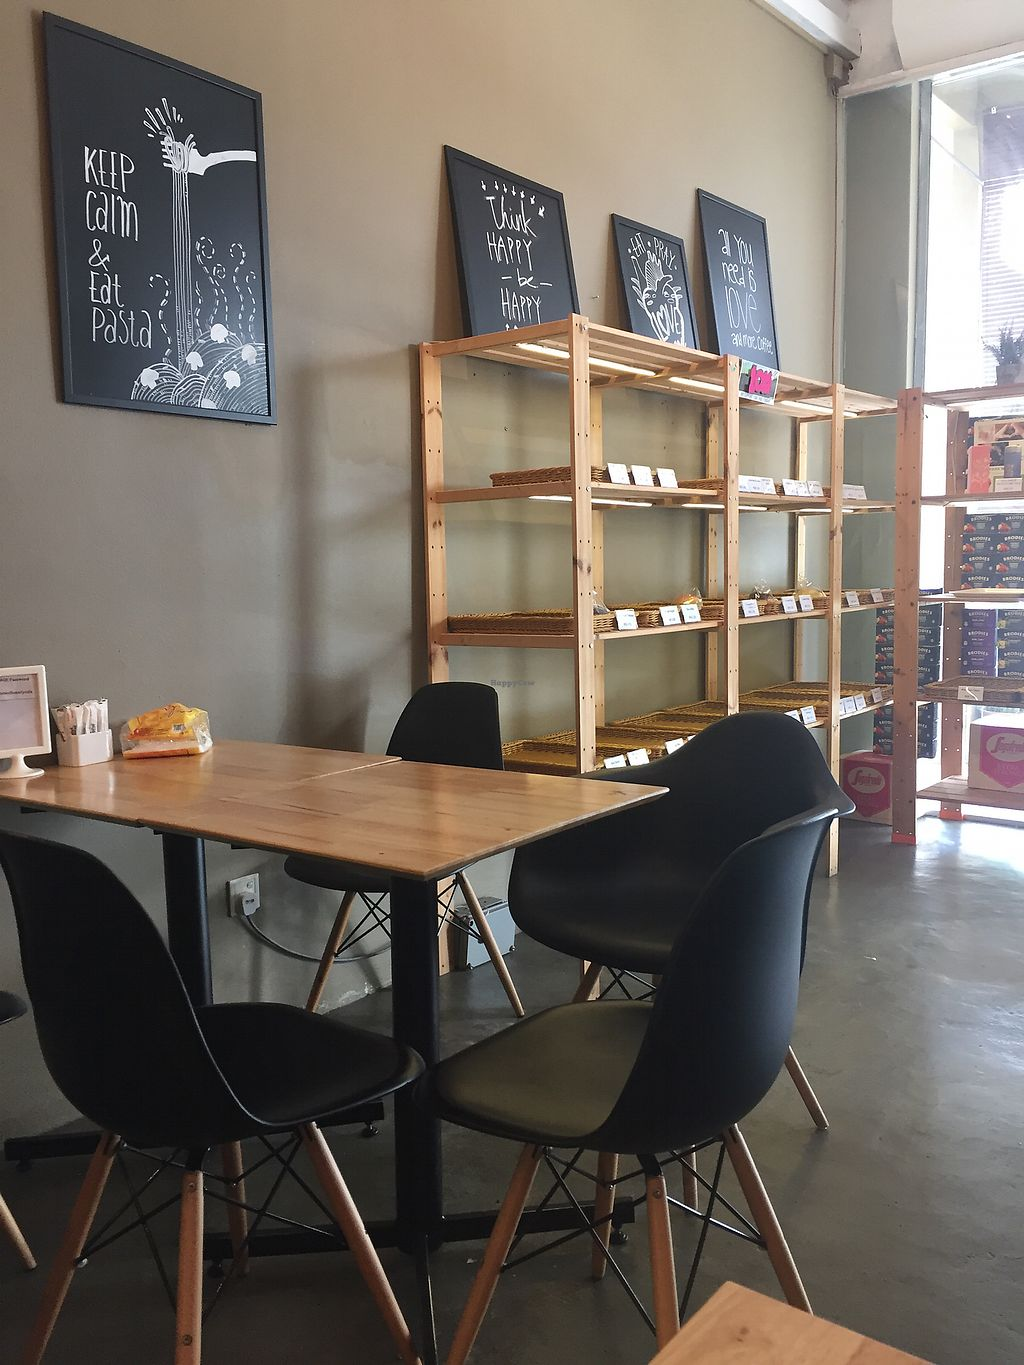 """Photo of Honesty Bakery & Cafe  by <a href=""""/members/profile/ChiamLongThiam"""">ChiamLongThiam</a> <br/>Shop view <br/> November 8, 2017  - <a href='/contact/abuse/image/104495/323147'>Report</a>"""